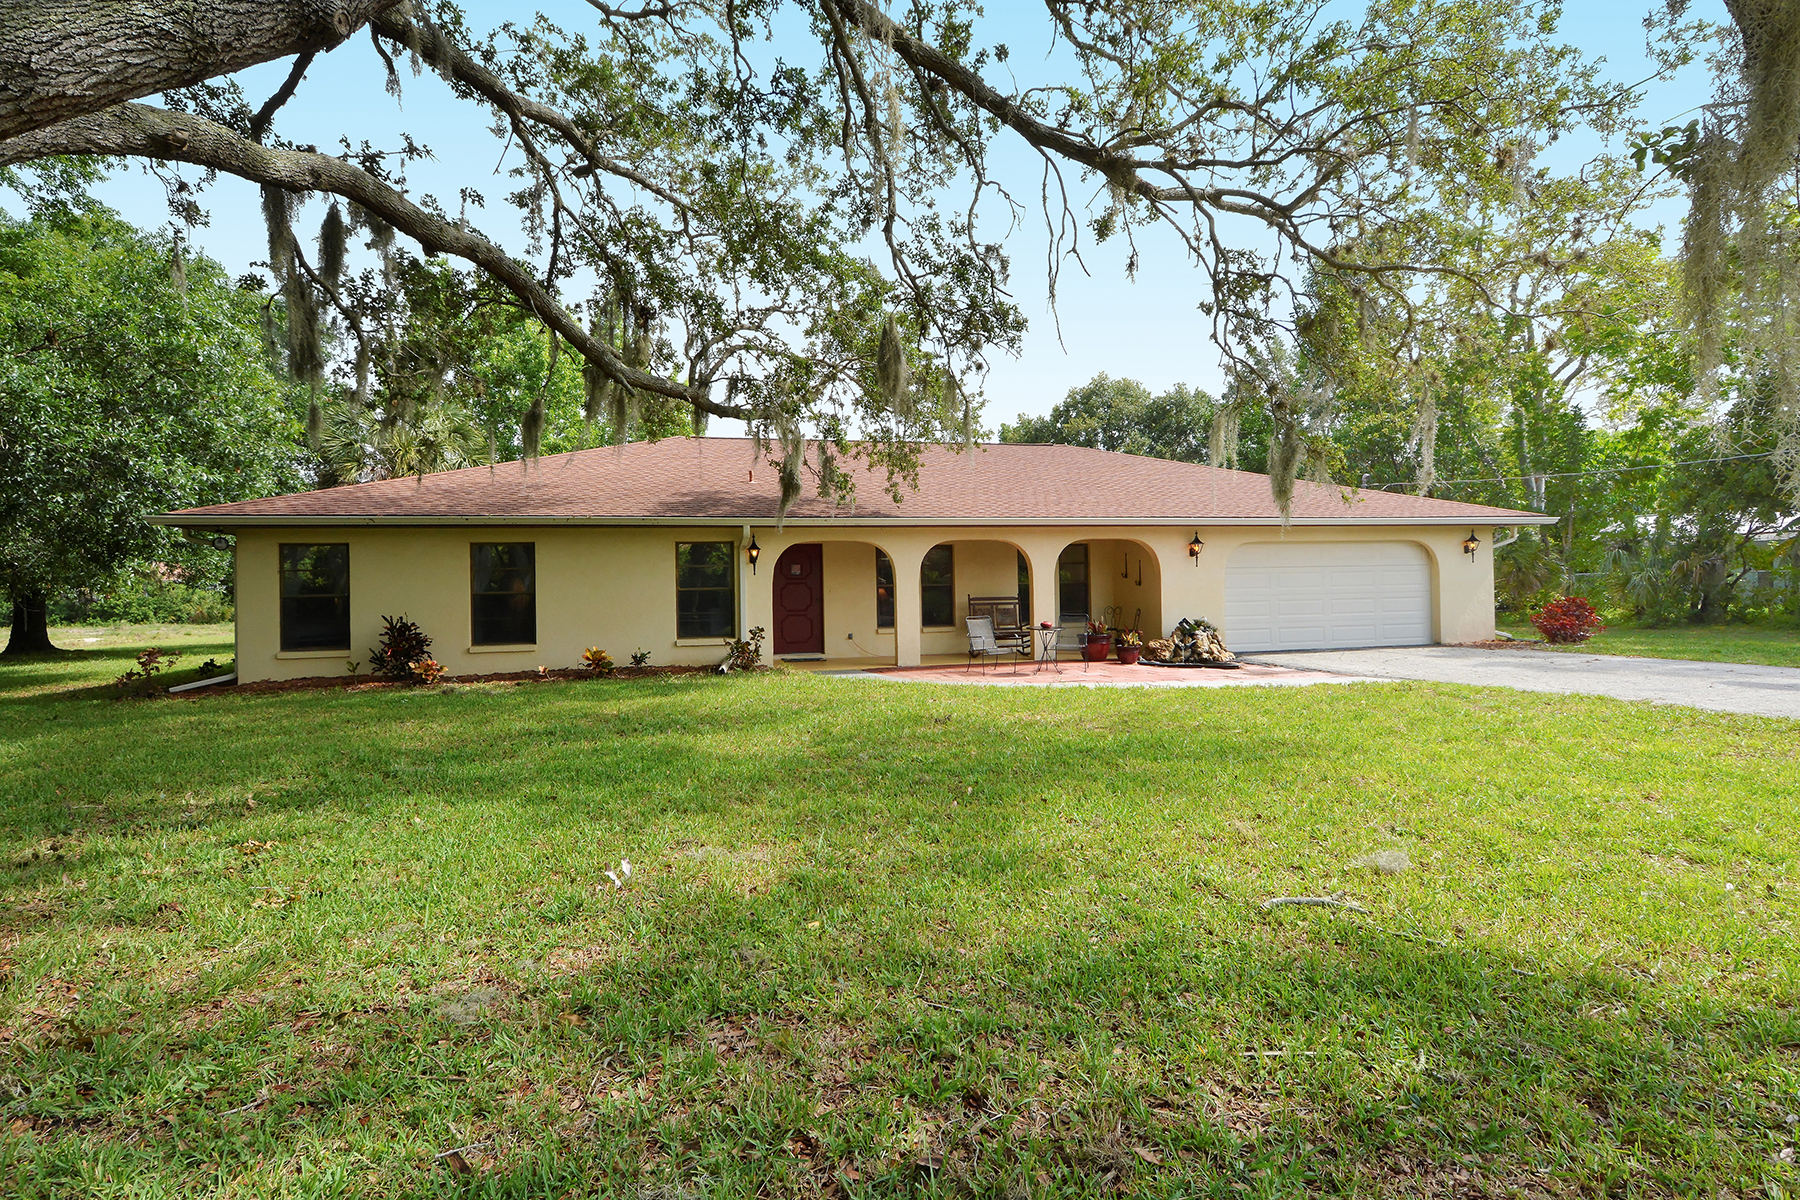 Single Family Home for Sale at MISSION VALLEY ESTATES 2271 Mission Valley Blvd Nokomis, Florida, 34275 United States